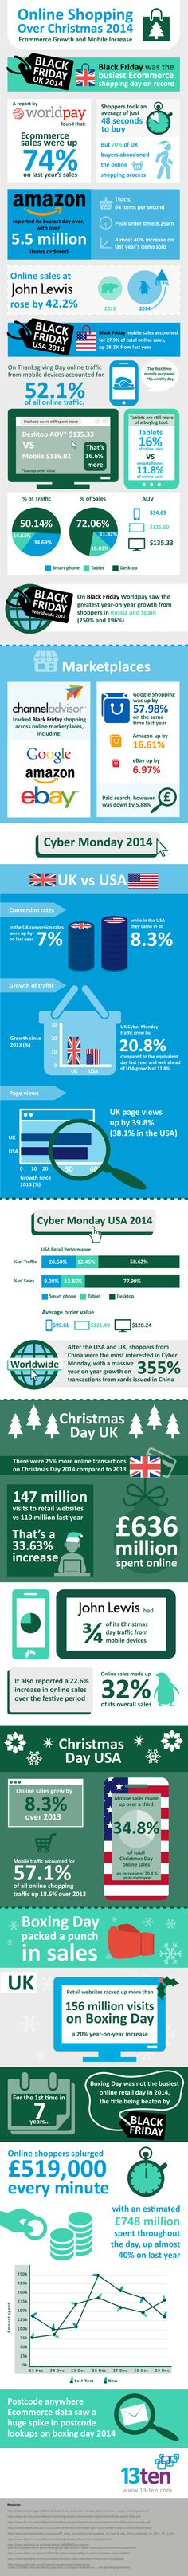 Mobile shopping and eCommerce boom over Christmas 2014 (Infographic)